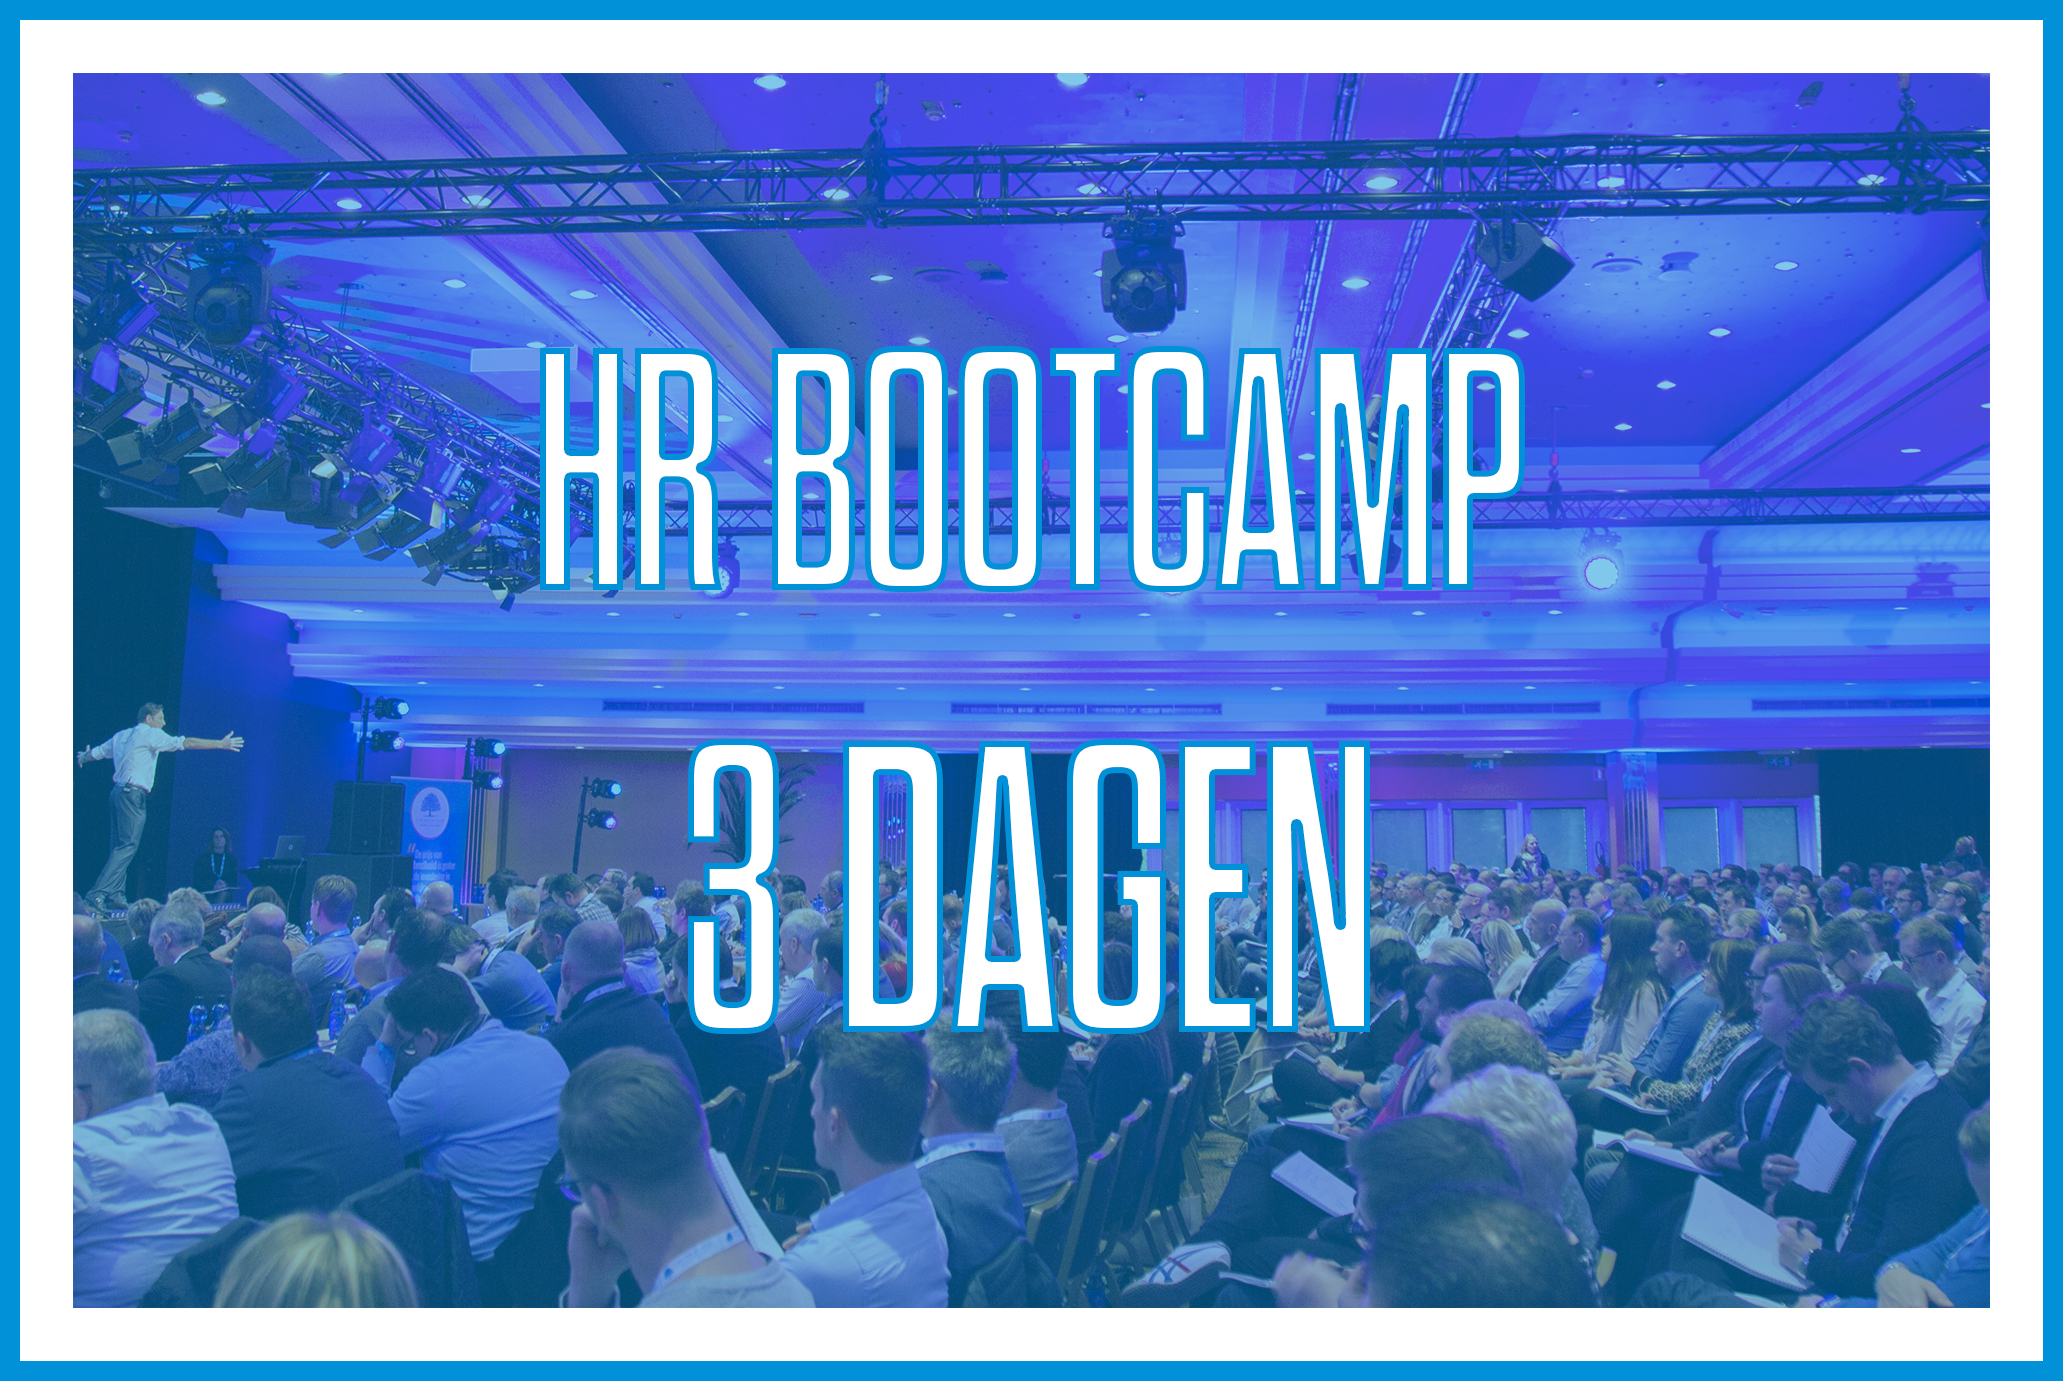 HR Bootcamp - Business Coaching